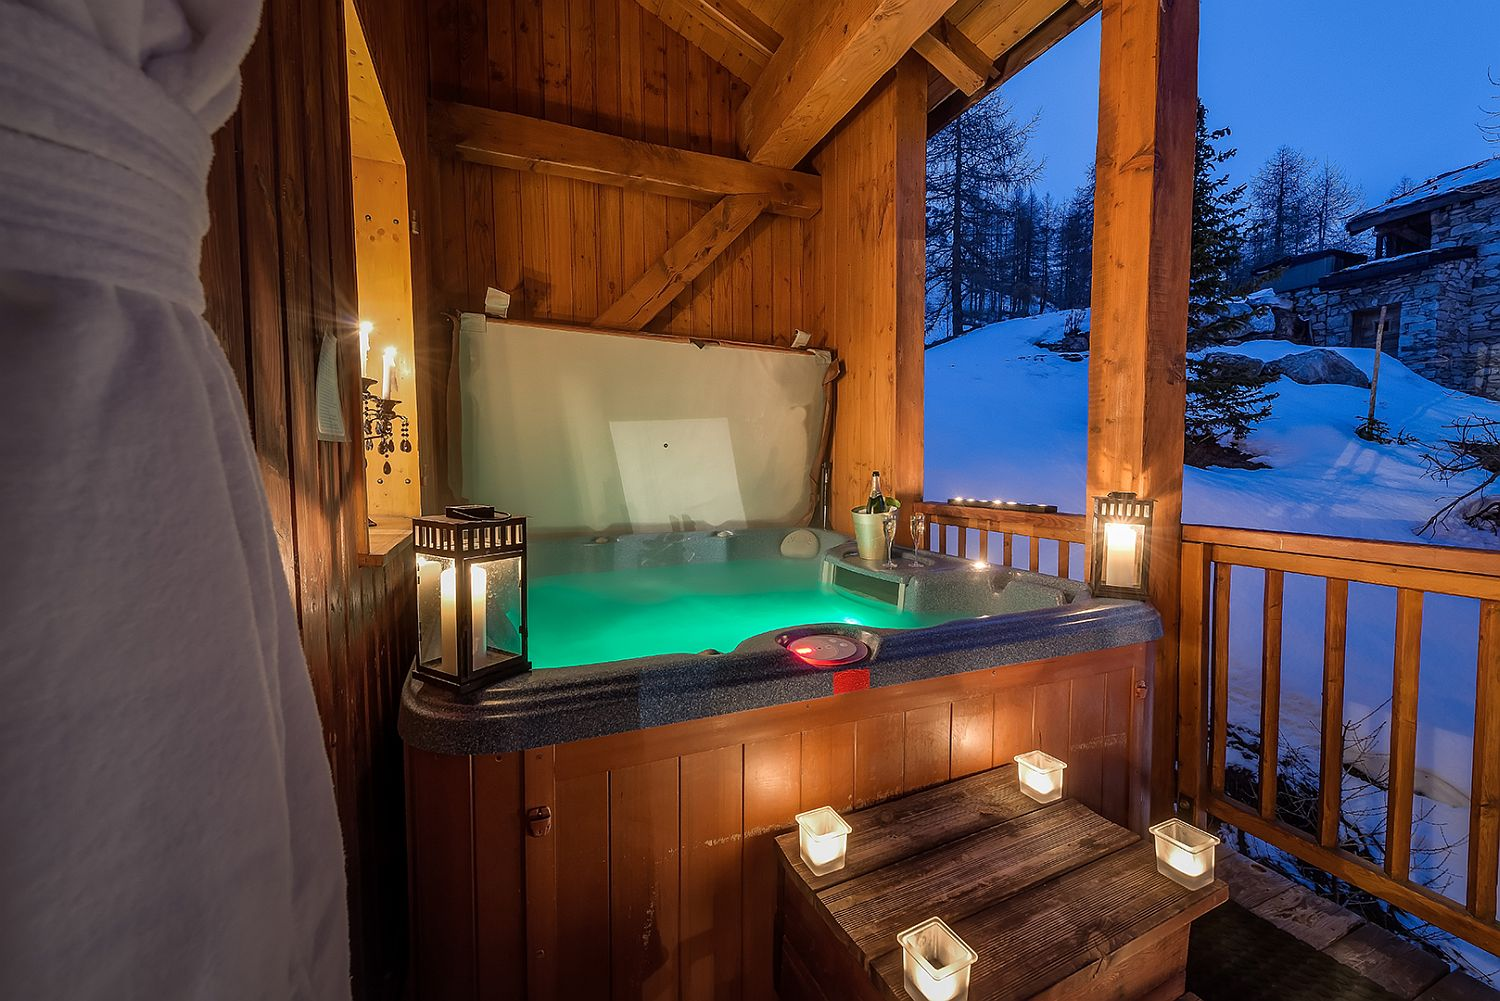 Hidden-outdoor-hot-tub-with-a-view-of-the-ski-slopes